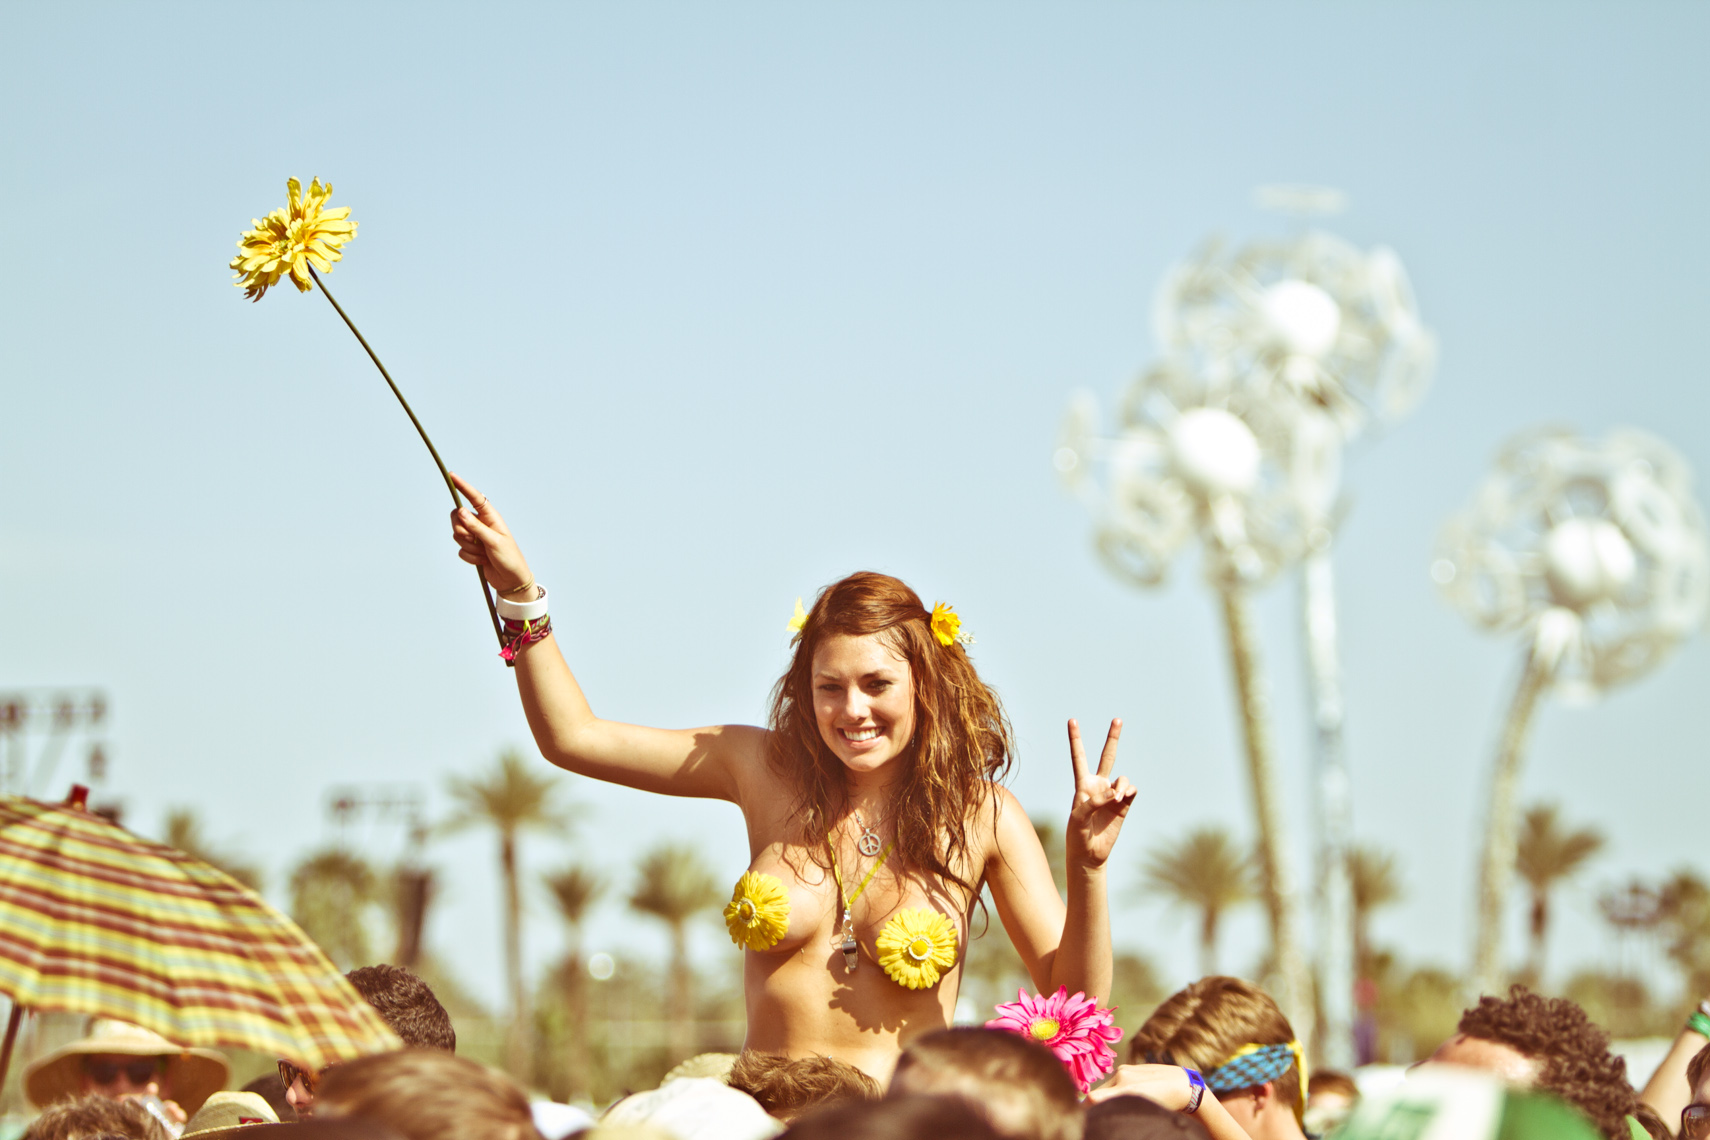 Topless girl at Coachella muic festival photograph by Forest Woodward